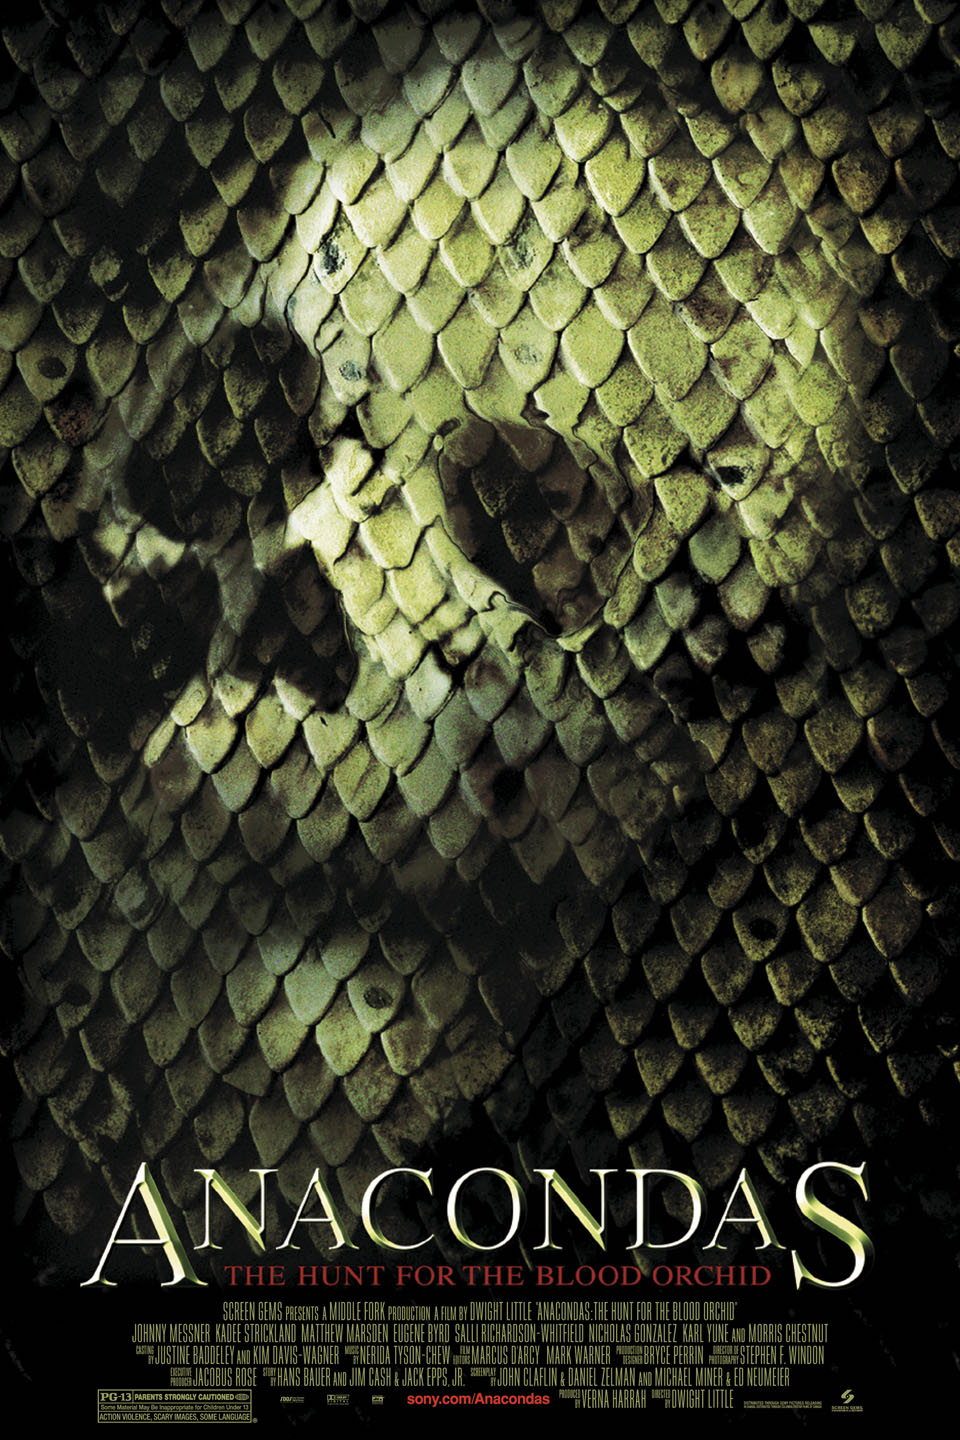 Anacondas: The Hunt for the Blood Orchid-Anacondas: The Hunt for the Blood Orchid